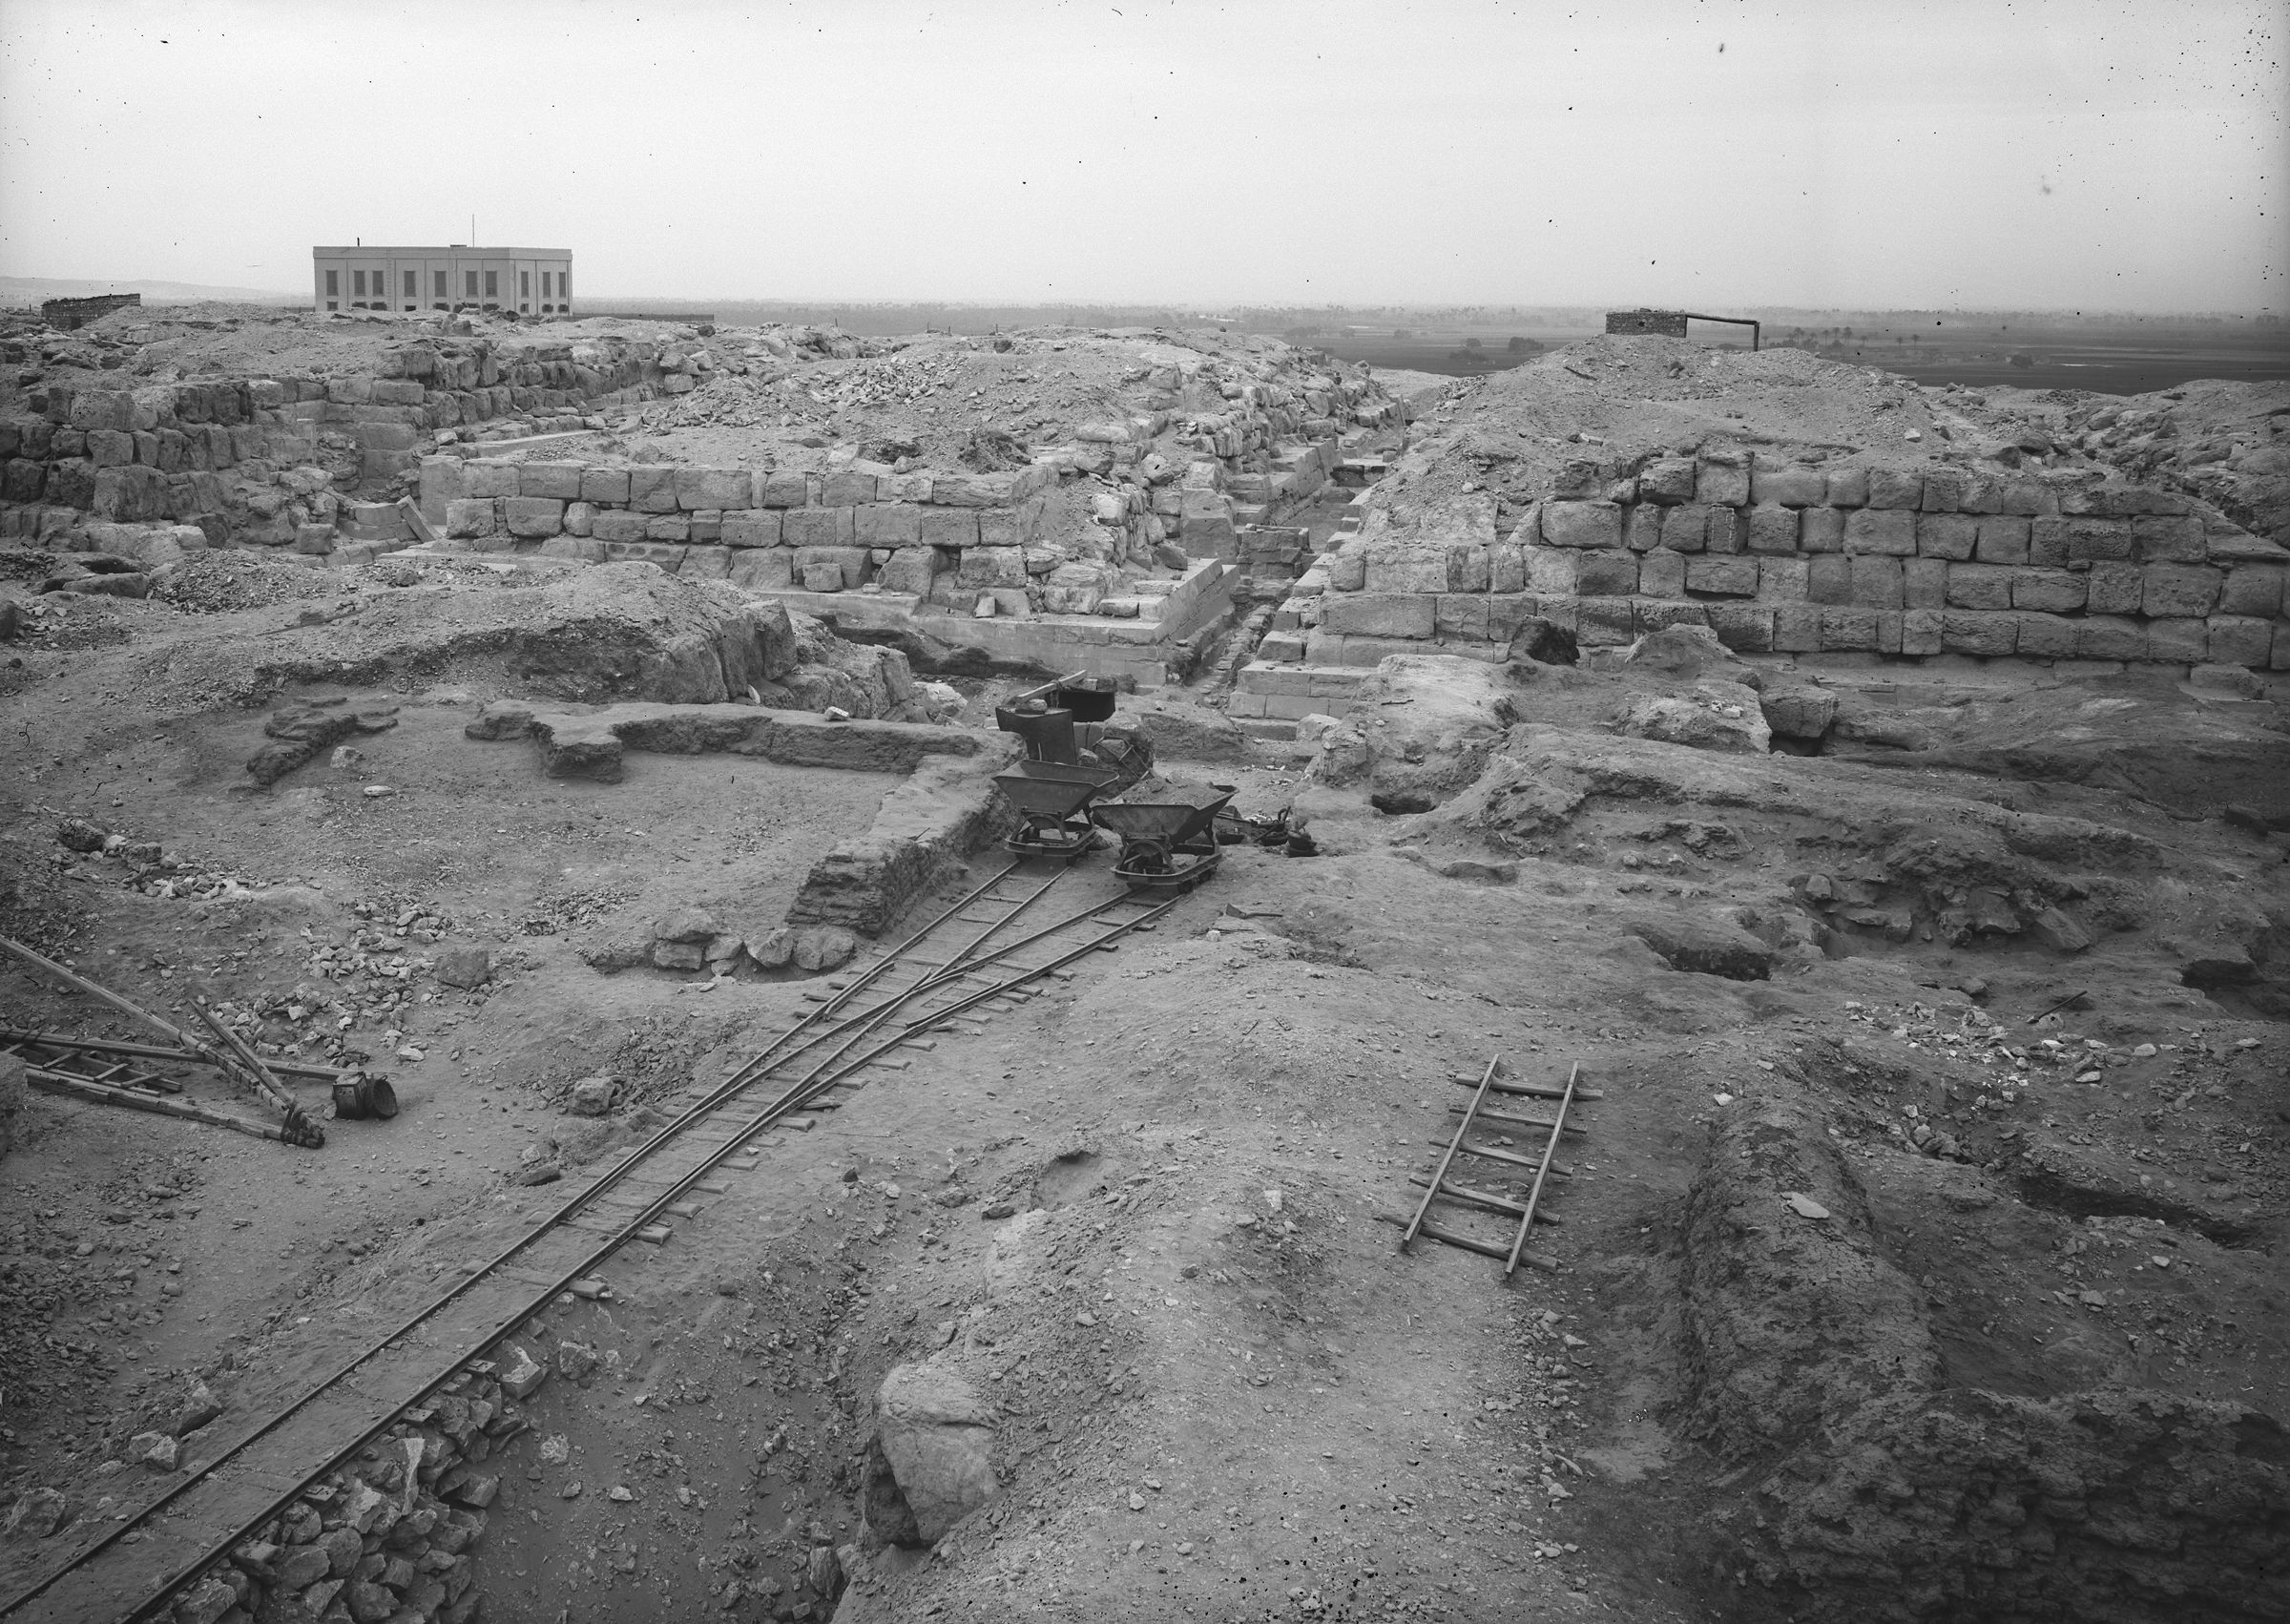 Eastern Cemetery: Site: Giza; View: street G 7300, G 7330-7340, G 7430-7440, G 7300 Pt i